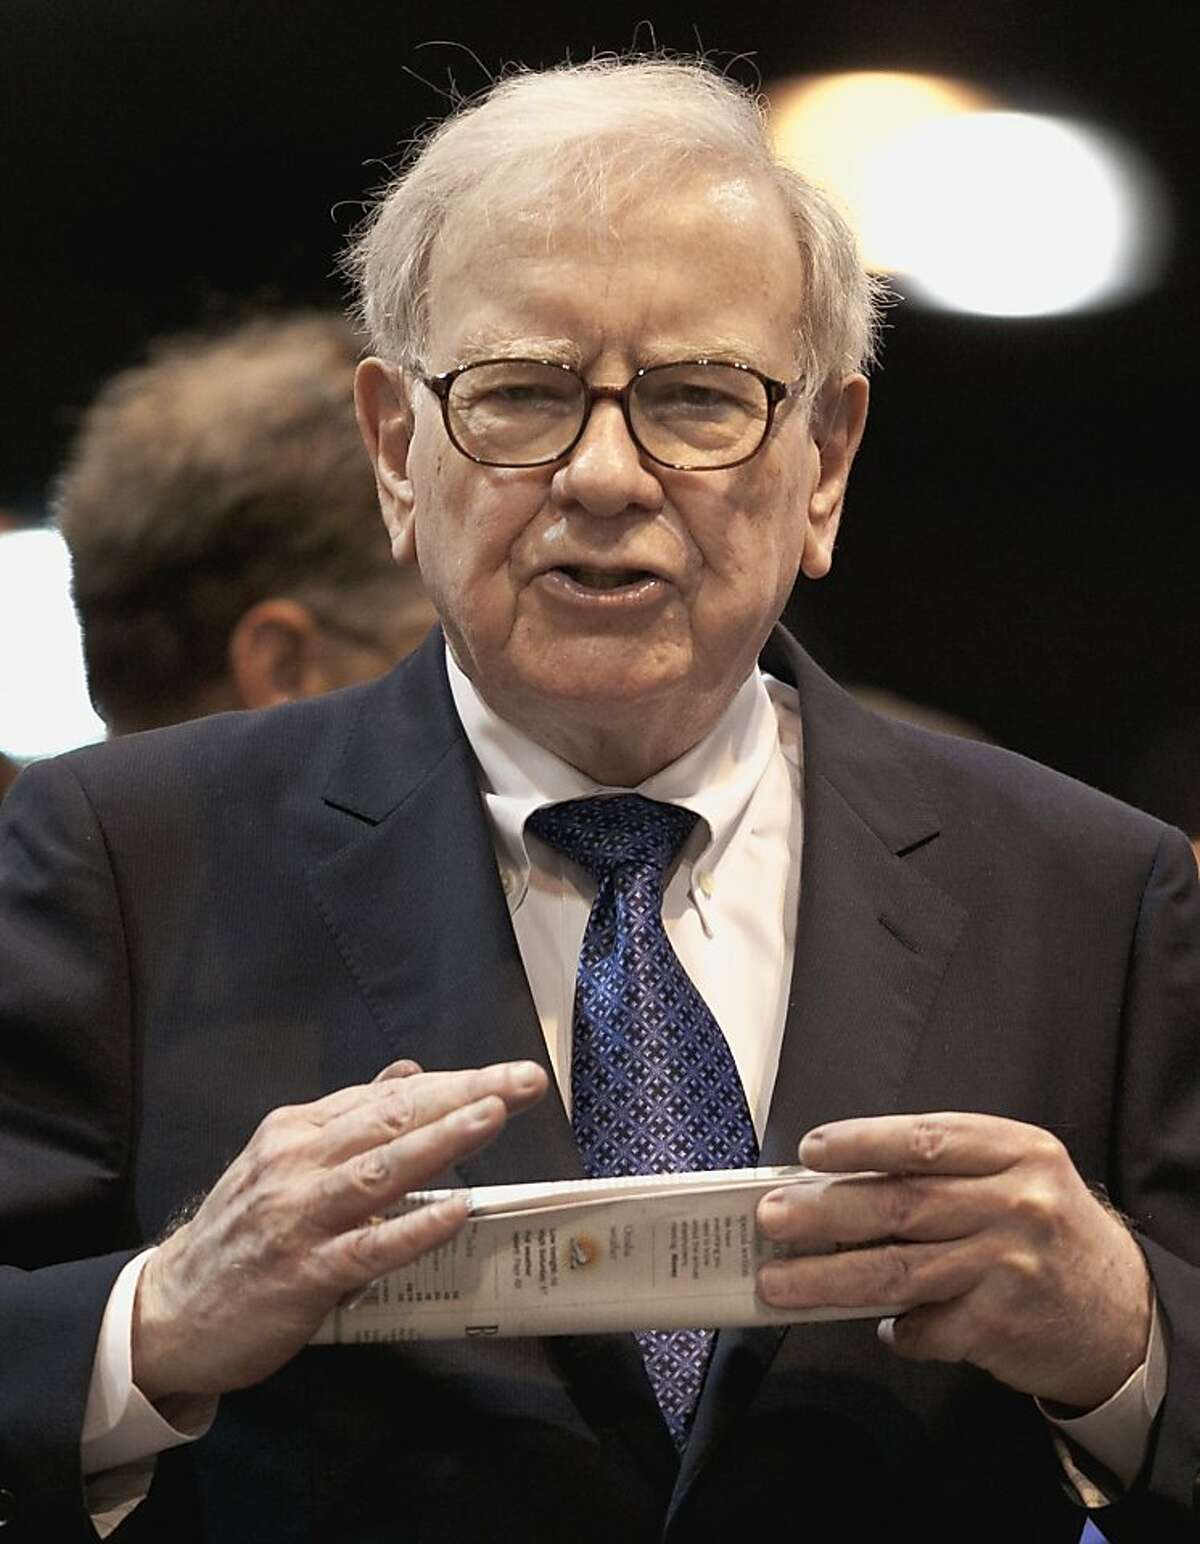 In this May 5, 2012 photo, Warren Buffett, chairman and CEO of Berkshire Hathaway, holds a newspaper as he participates in a newspaper throwing competition prior to the Berkshire Hathaway shareholders meeting in Omaha, Neb. On Thursday, May 17, 2012, Buffett's company Berkshire Hathaway agreed to buy 63 papers from Media General Inc. The Richmond, Va.-based Media General says the $142 million deal includes the Richmond Times-Dispatch and the Winston-Salem Journal. The company is selling all its papers except those in Tampa, Fla., most importantly the Tampa Tribune. (AP Photo/Nati Harnik)